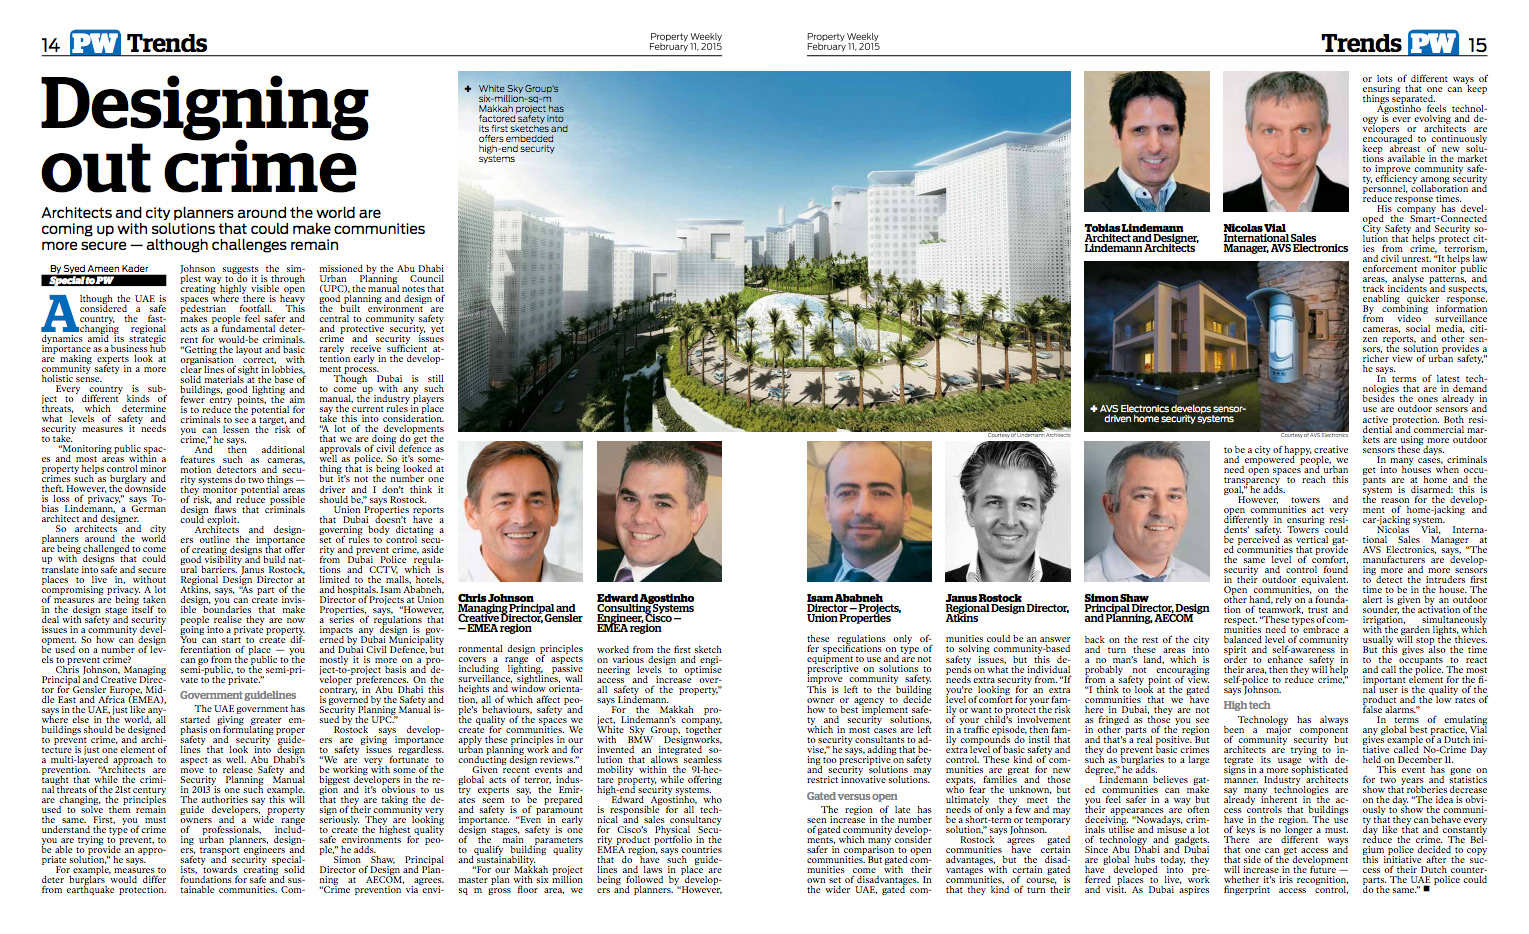 Lindemann Group - Property Weekly: Designing out crime - Lindemann's Makkah megaproject